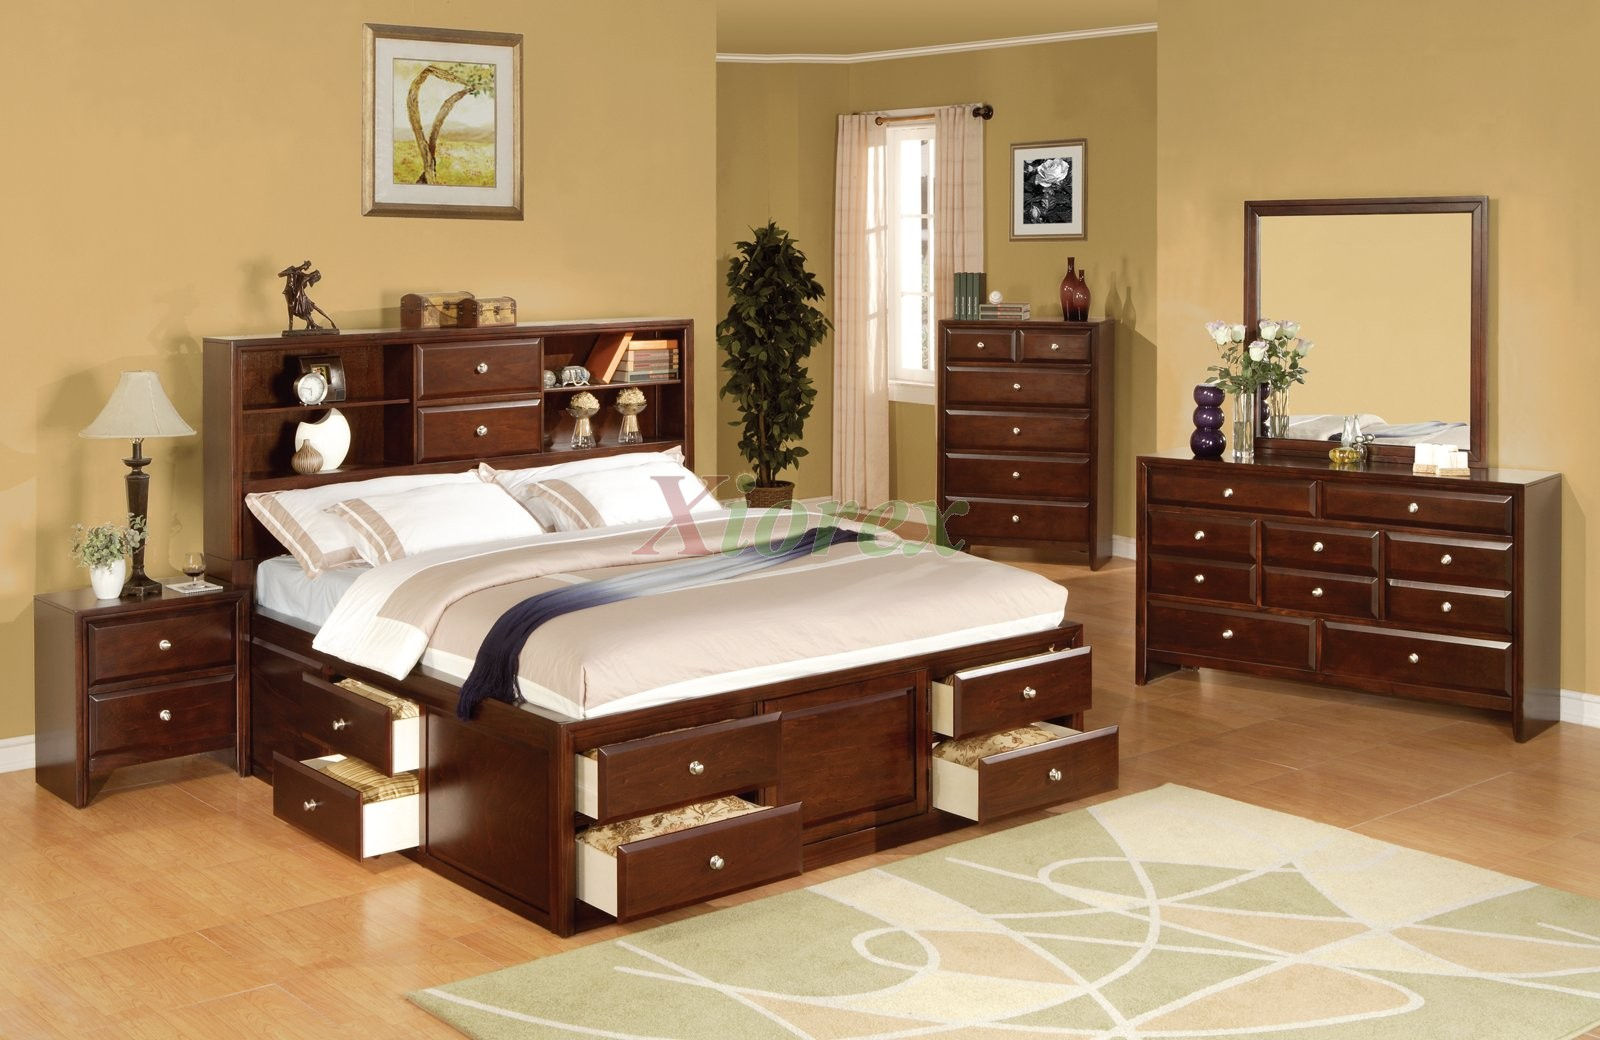 Bookcase and Storage Bedroom Furniture Set 137 | Xiorex